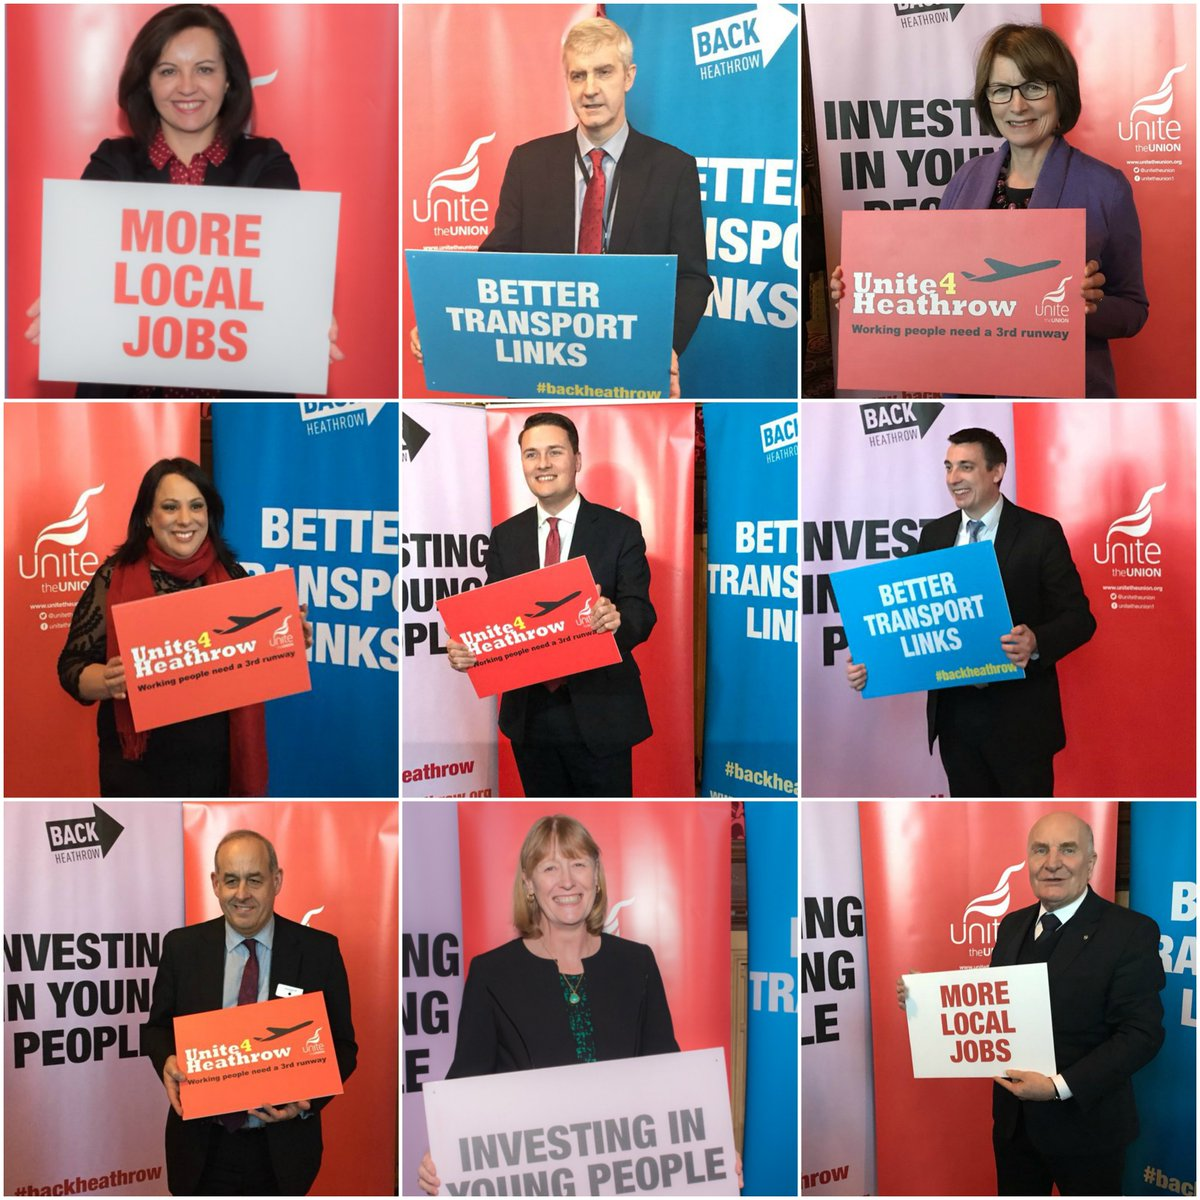 Nine of the numerous MPs who attended the Back Heathrow/Unite event